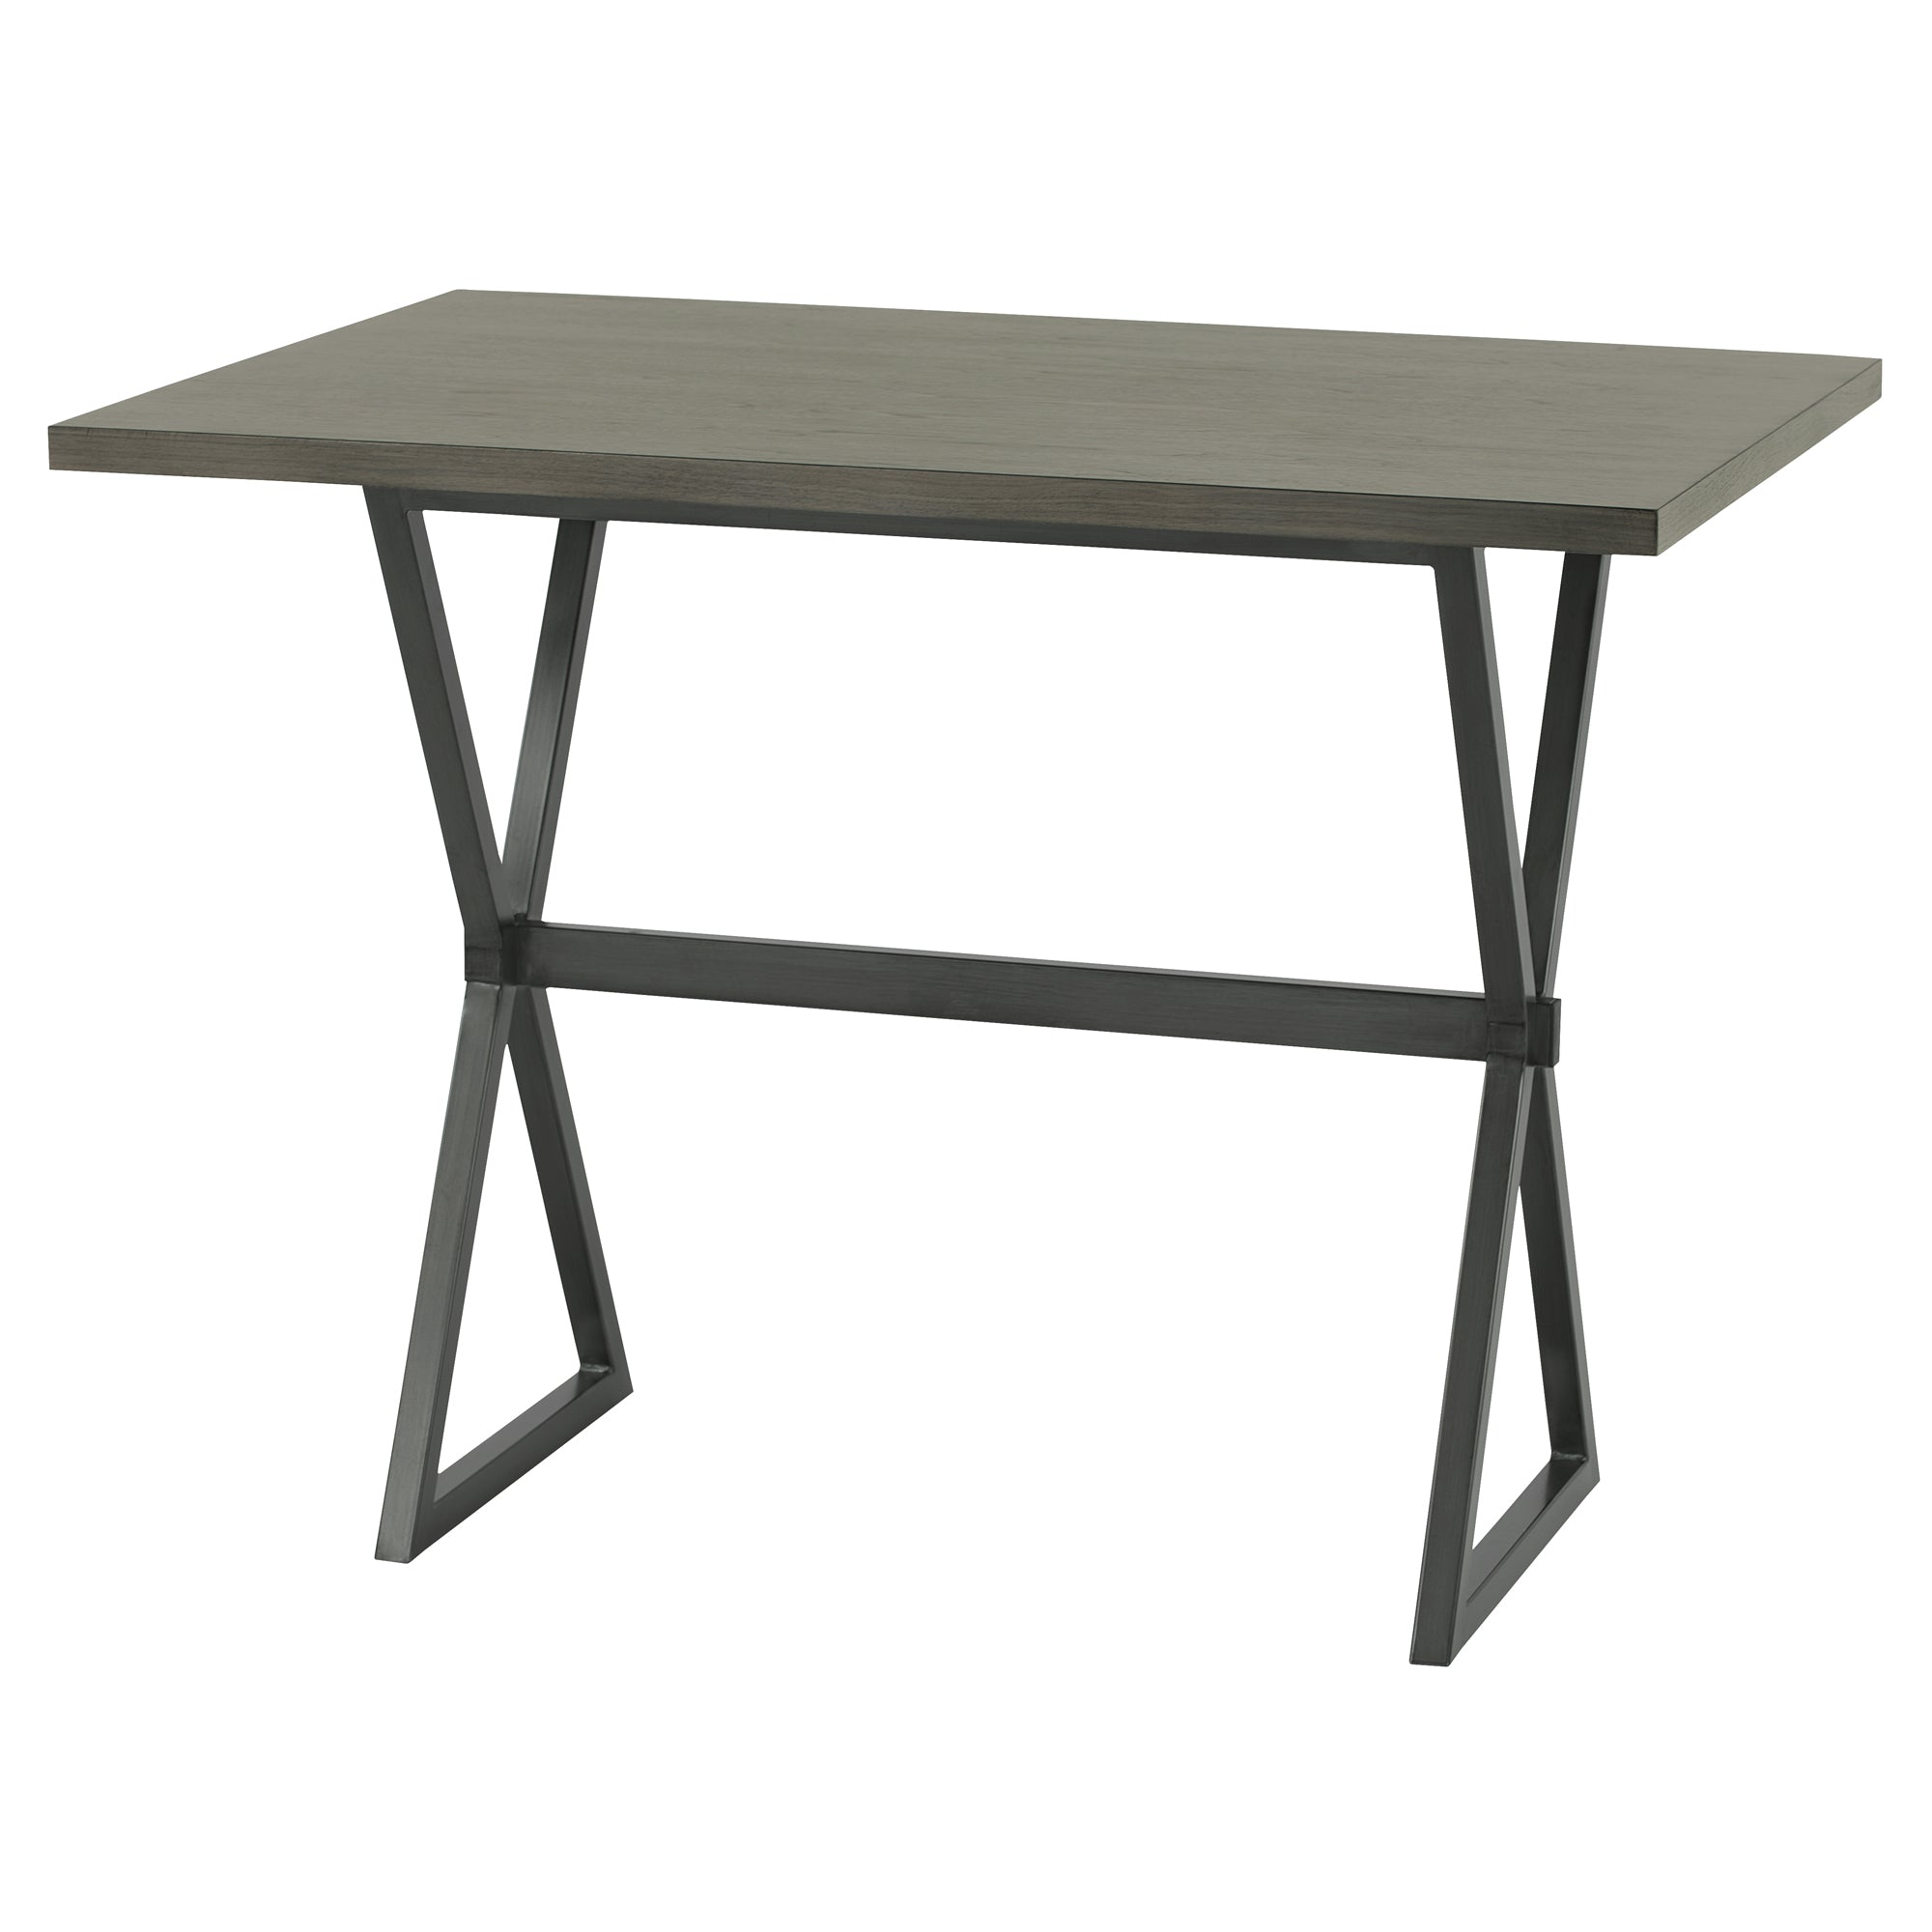 Armen Living LCVLBTTOGW Valencia Contemporary Rectangular Bar Table in Mineral Finish with Grey Walnut Wood Top